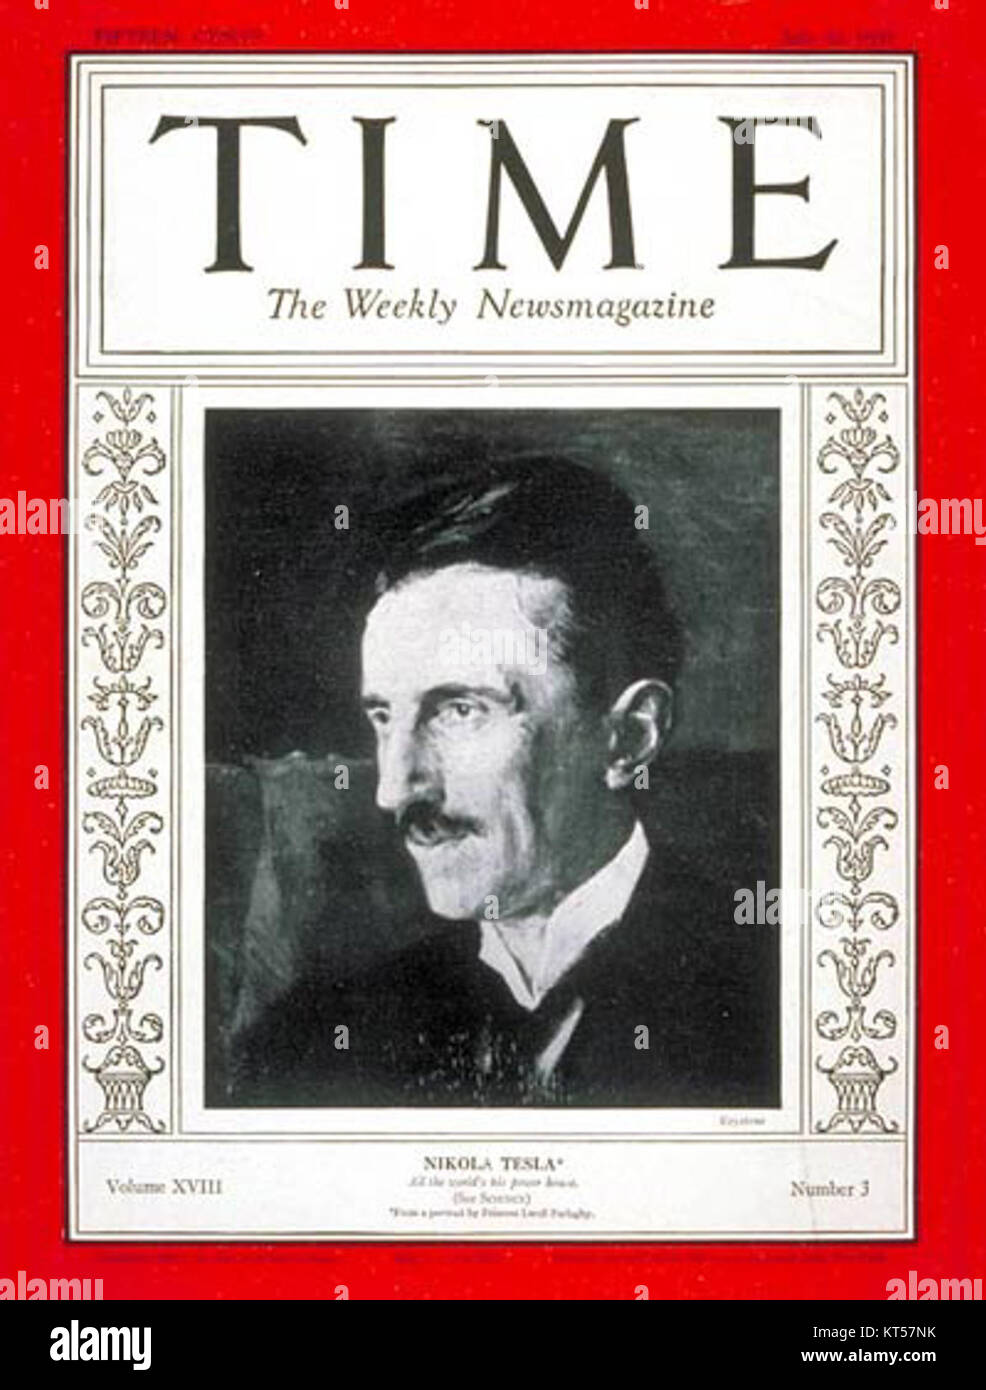 Old Time Magazine Illustration Stock Photos & Old Time